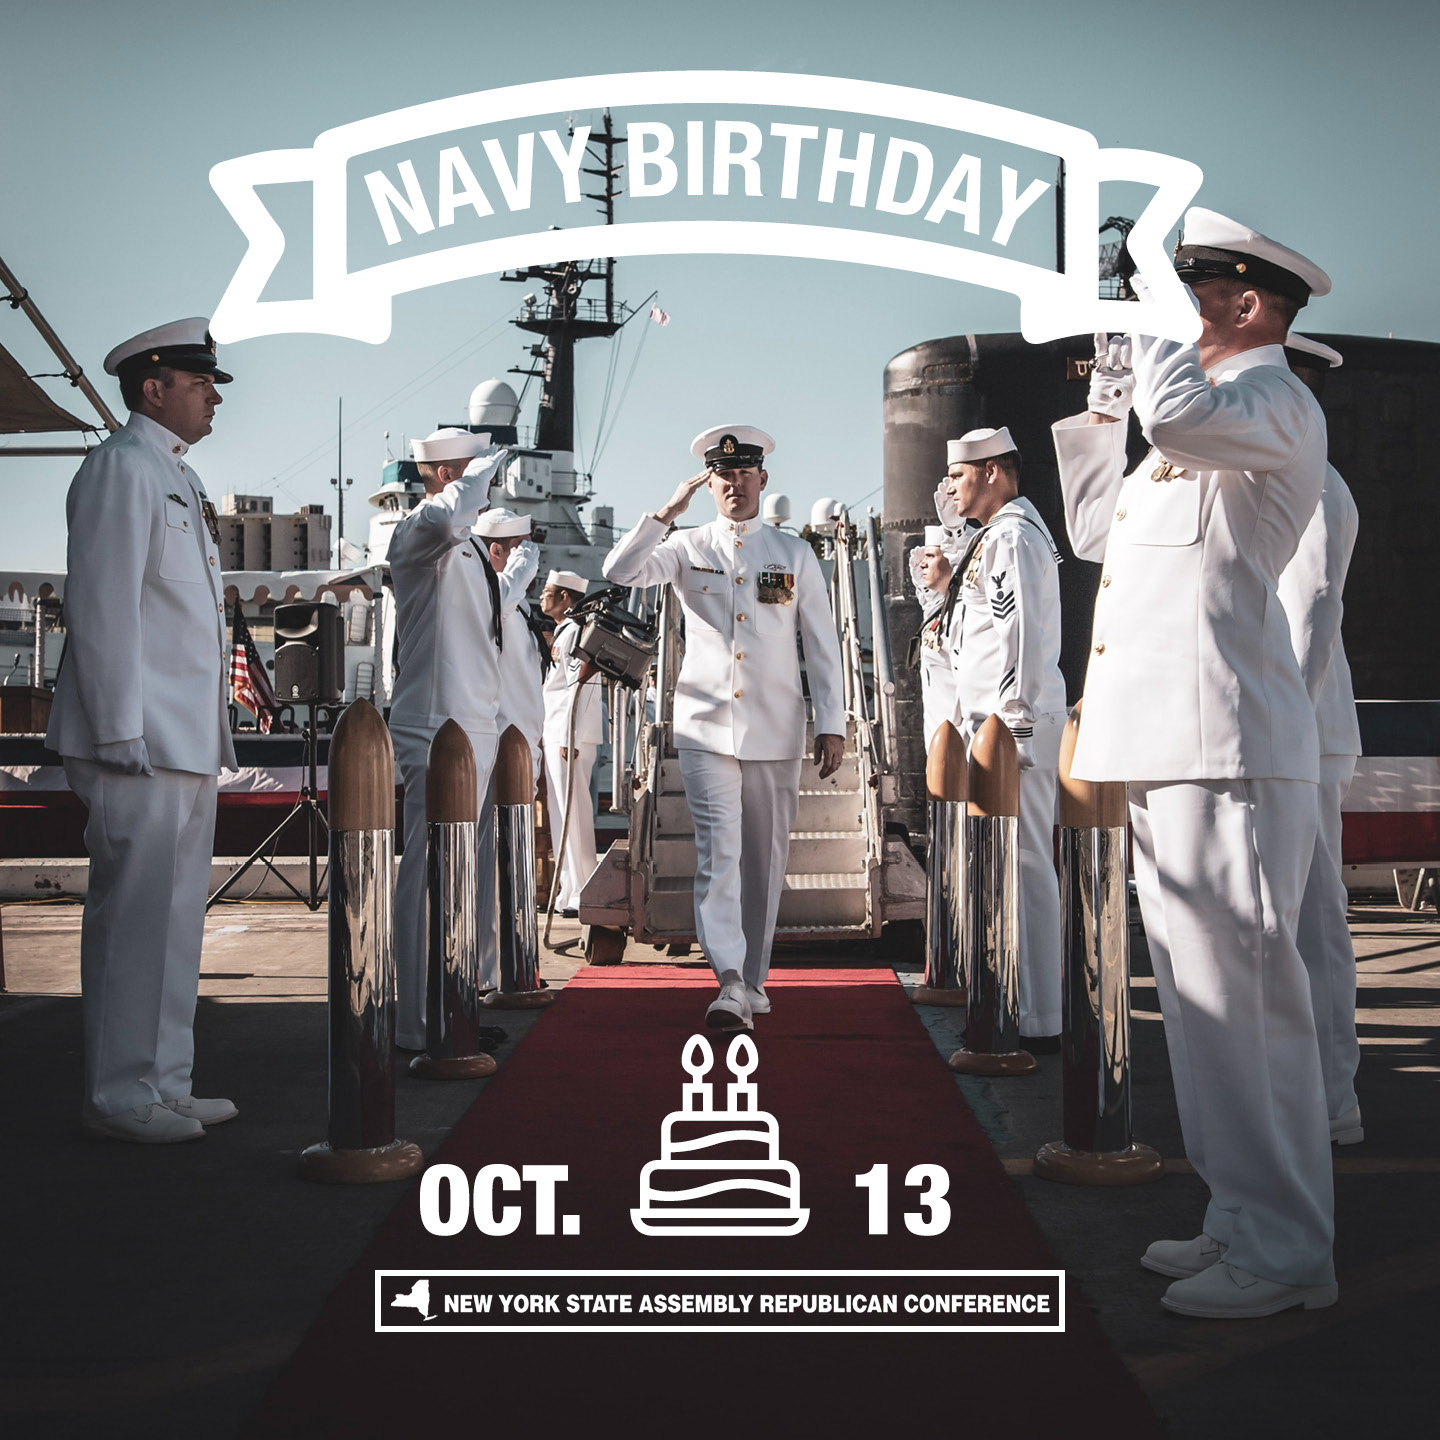 Navy_Birthday_October.jpg